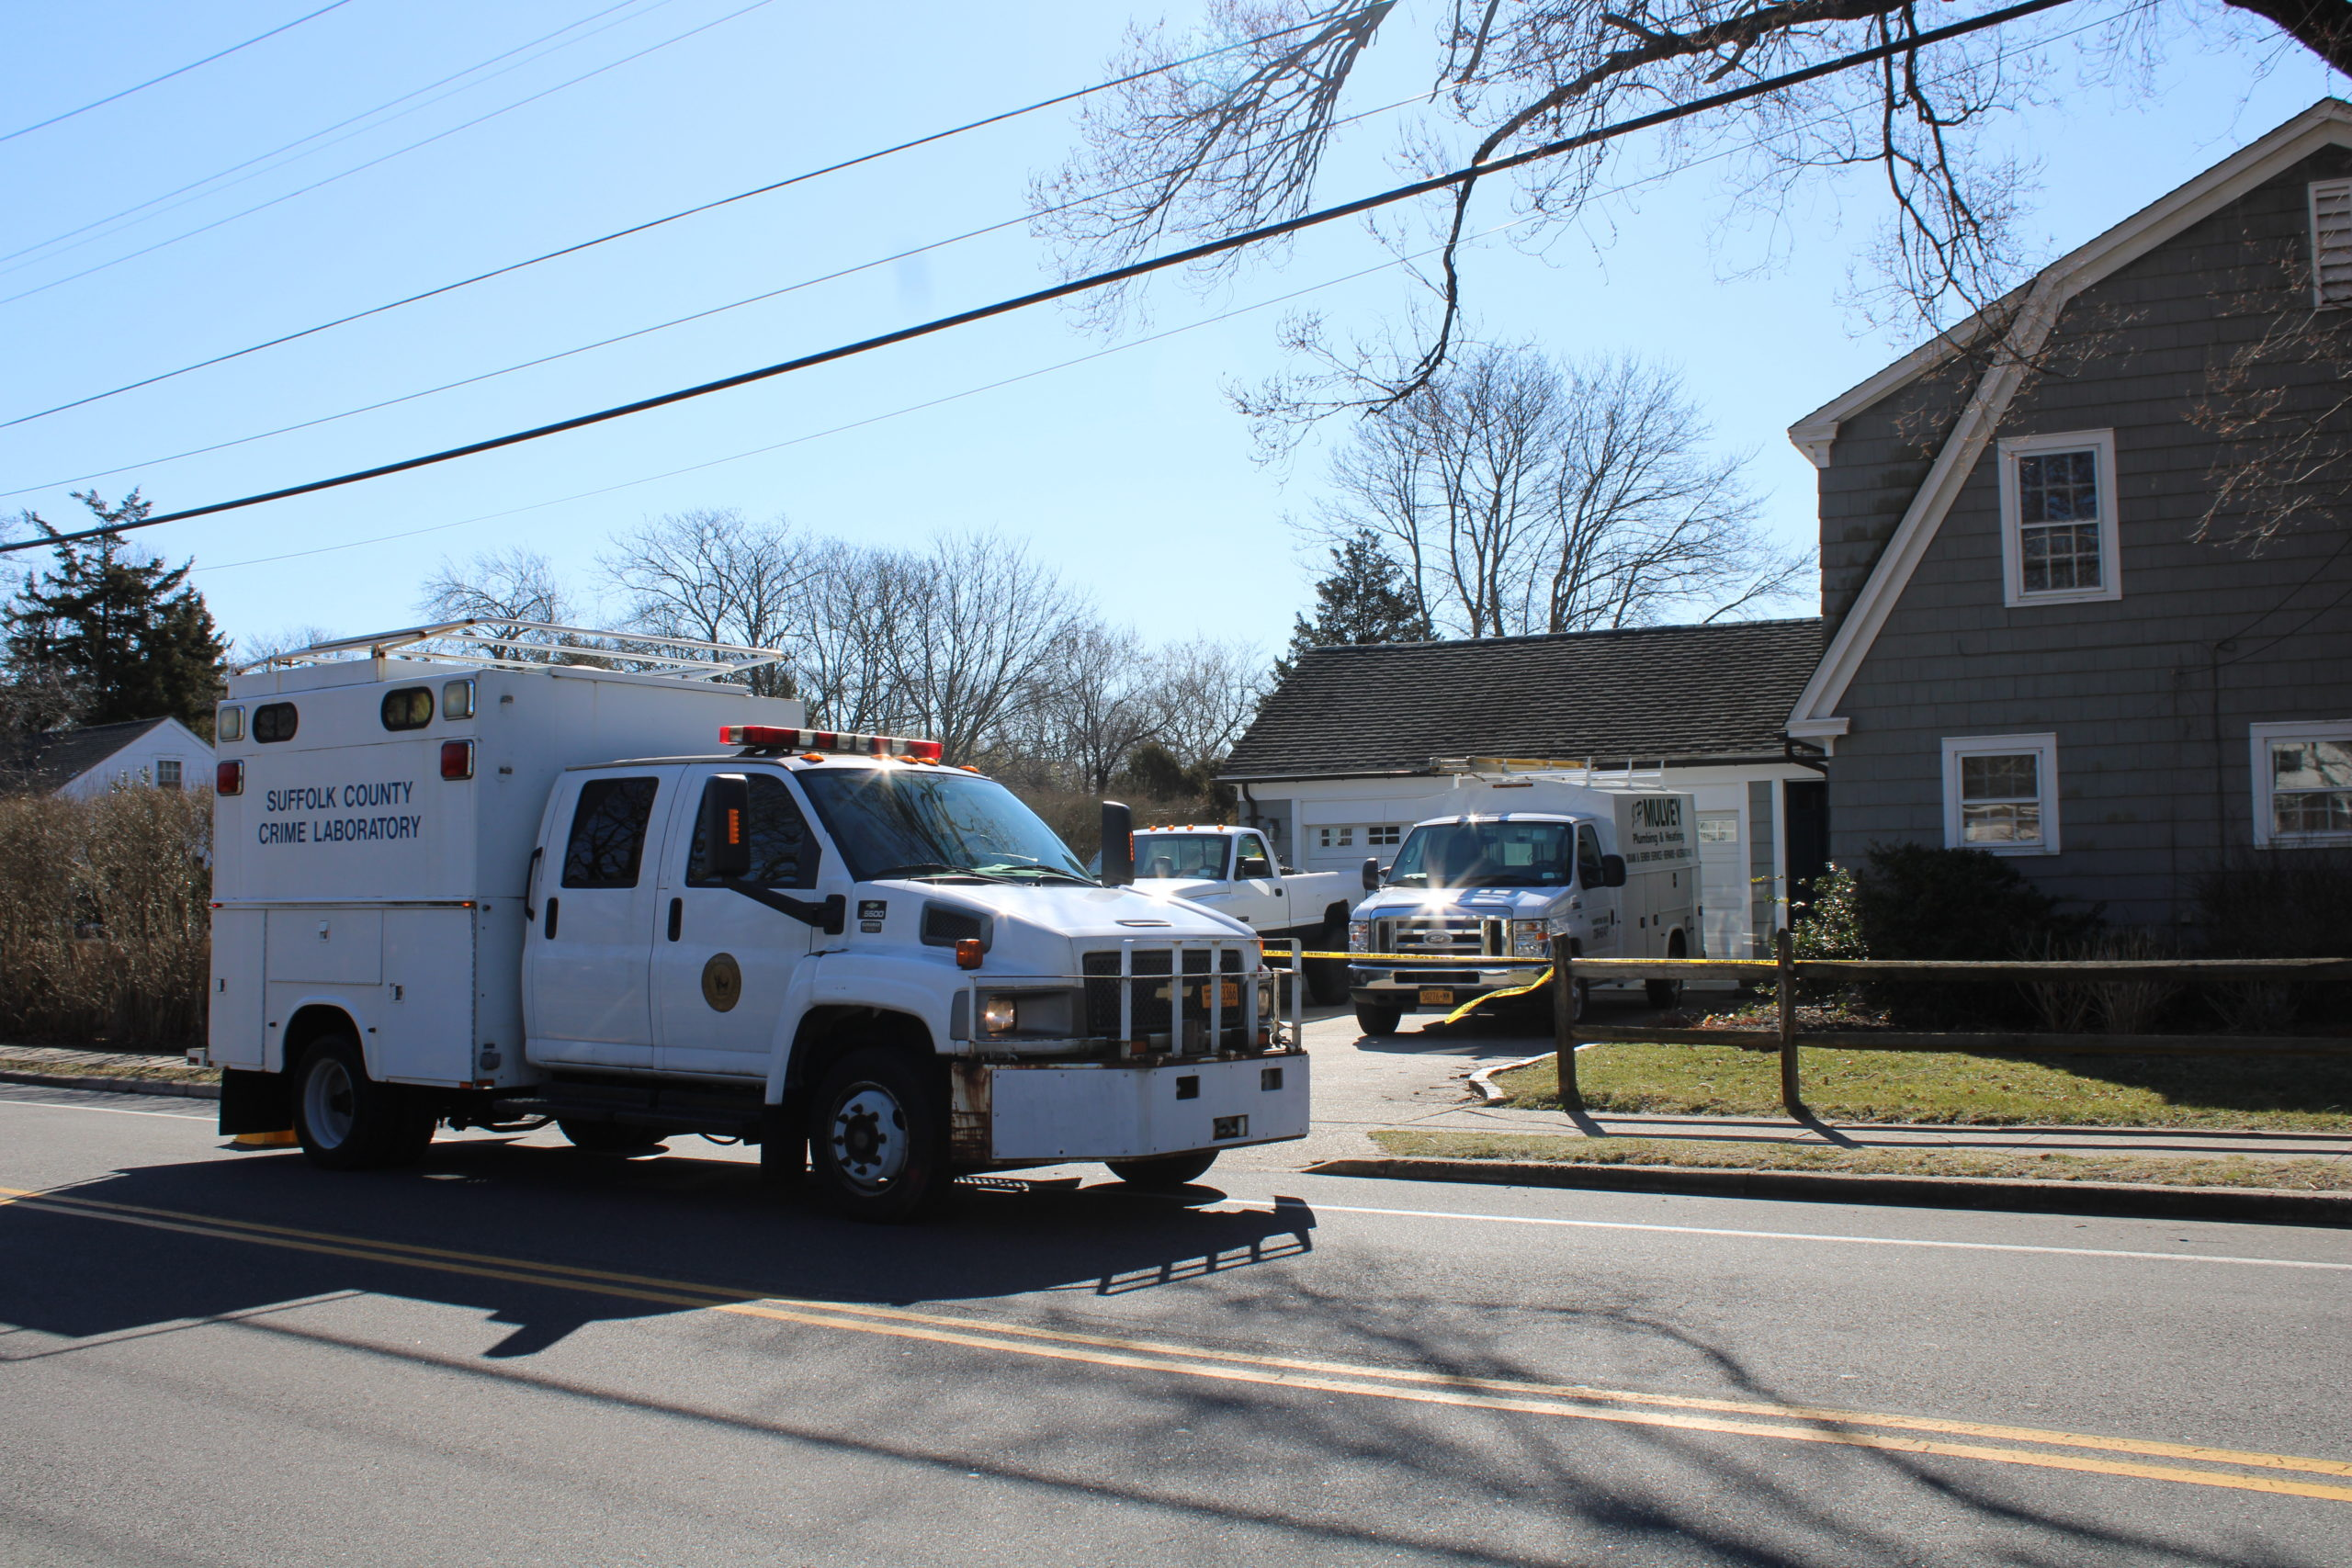 Southampton Town and Suffolk County Police were on the scene Thursday morning of a double shooting that took place on Wednesday night that left two people dead in Hampton Bays.